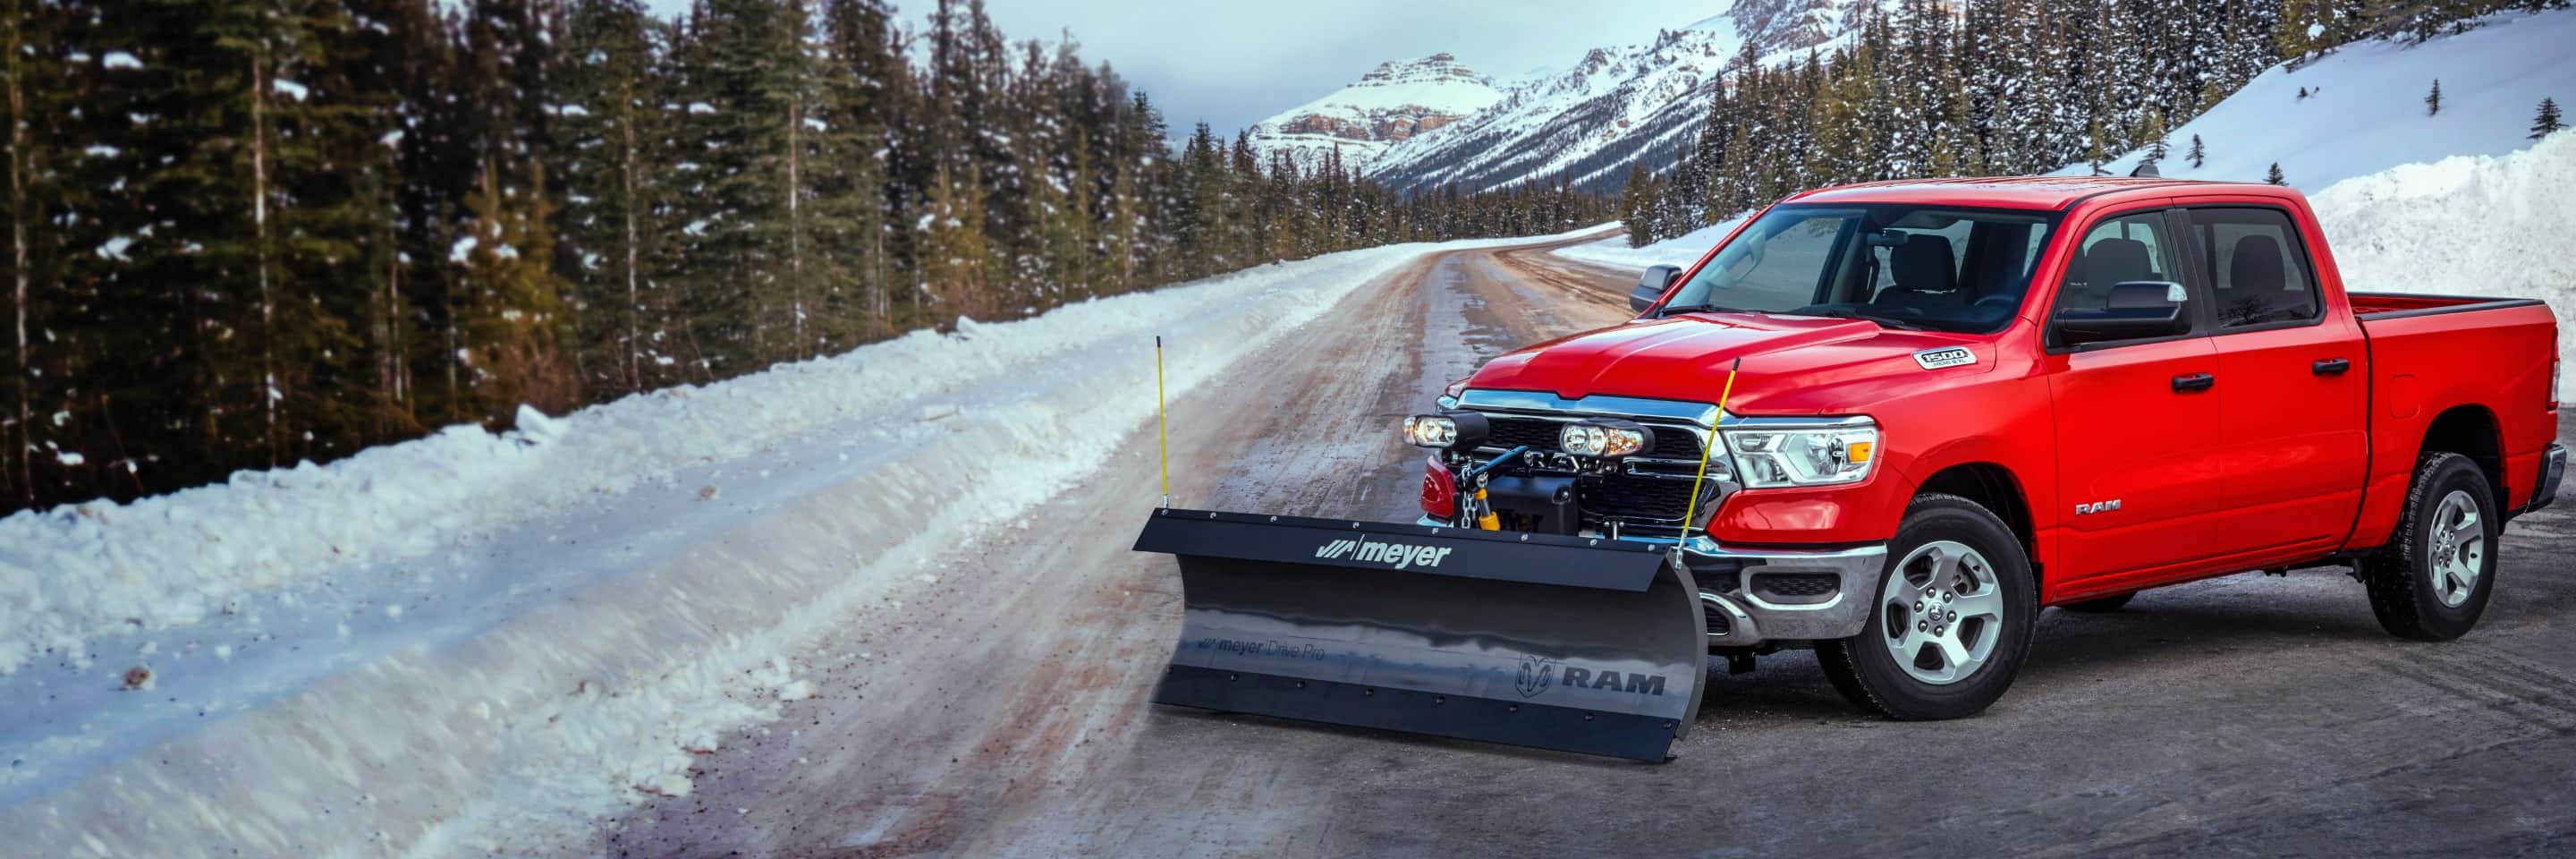 The 2020 Ram 1500 with a snowplow upfit parked across the width of a plowed mountain road.